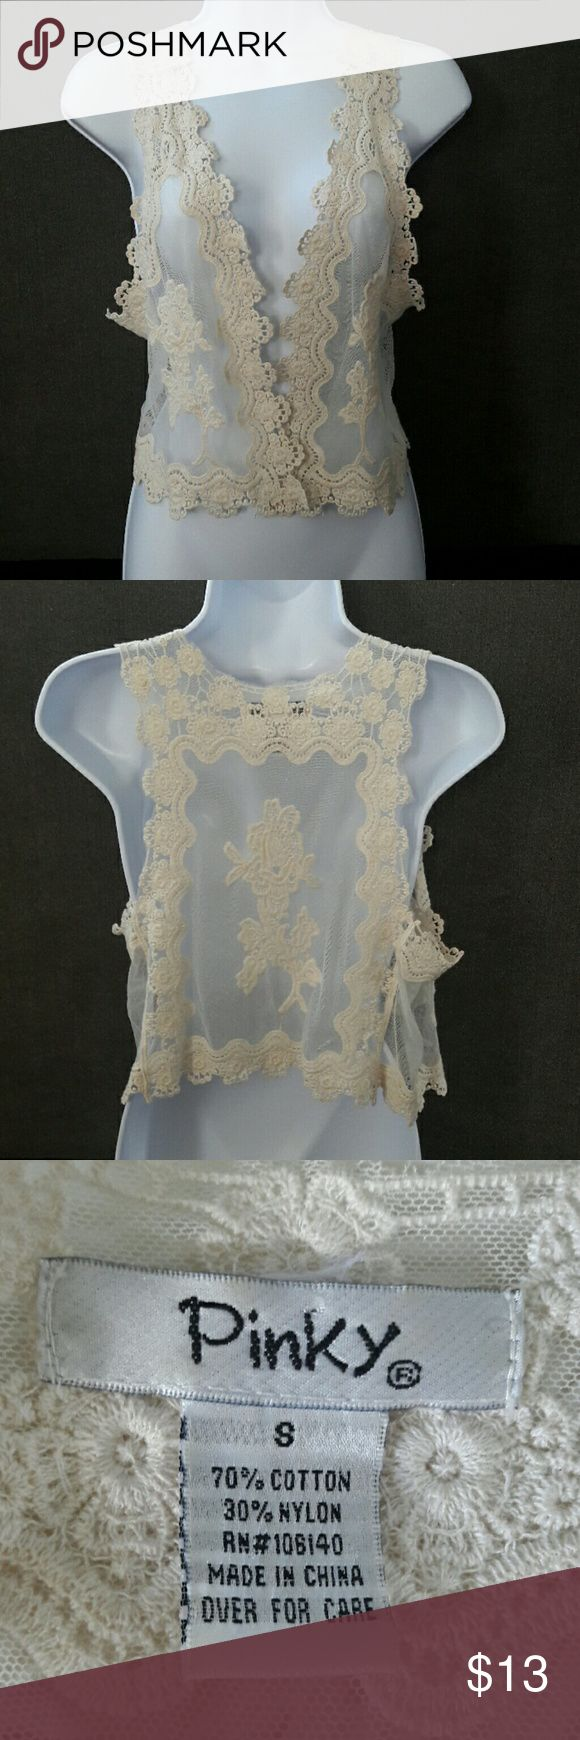 Off-white lace vest/throw Never worn. 70% cotton 30% nylon Pinky Tops Tunics